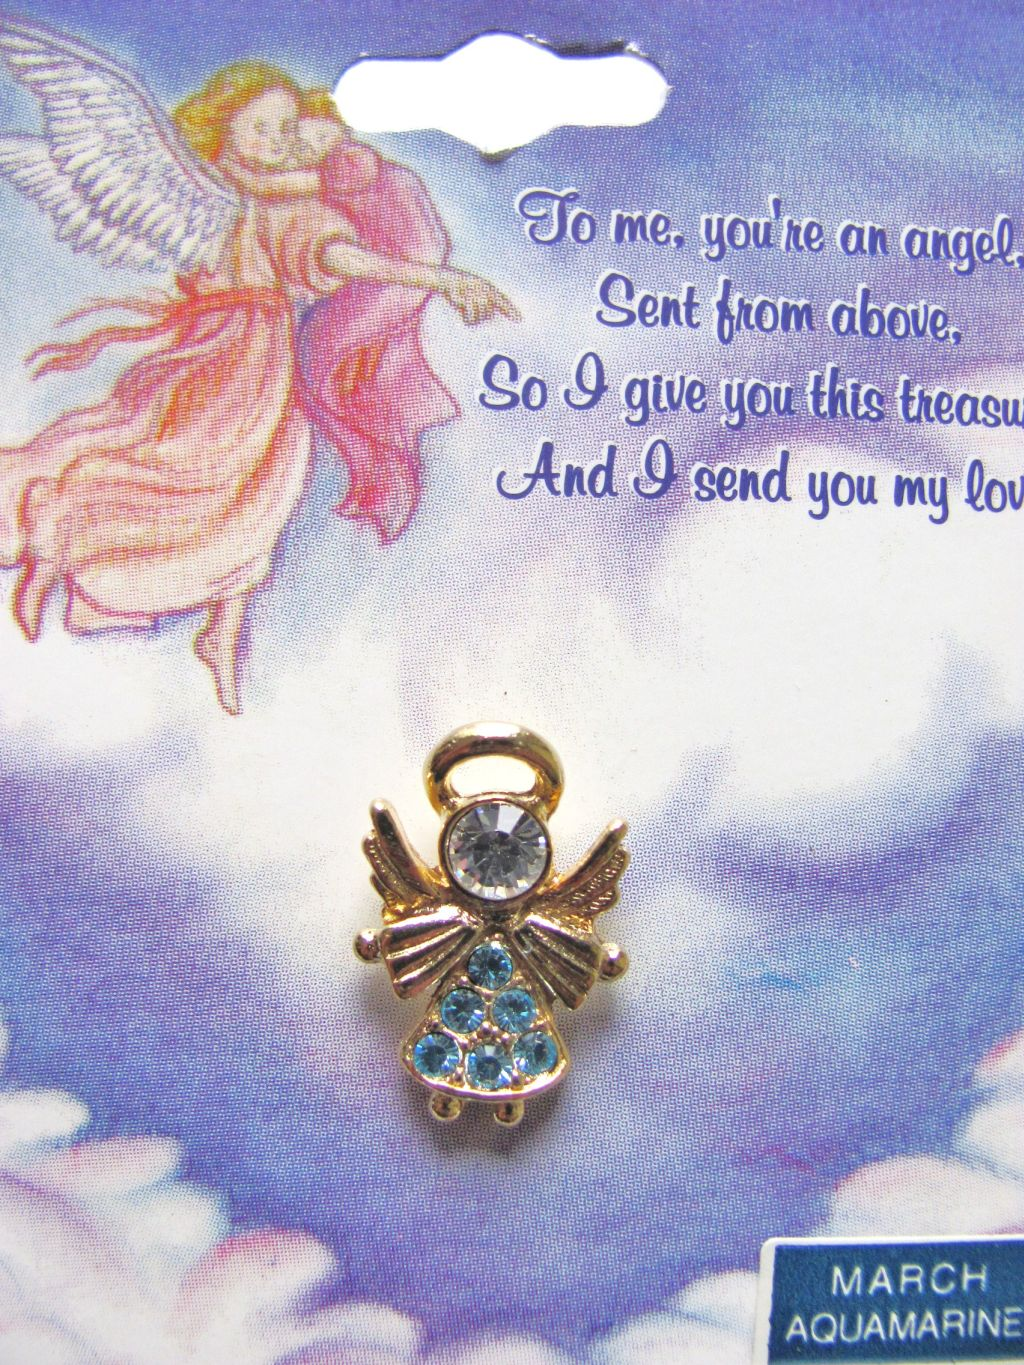 Aquamarine-March Birthstone Angel Pin Gold Tone, Genuine Austrian Crystals